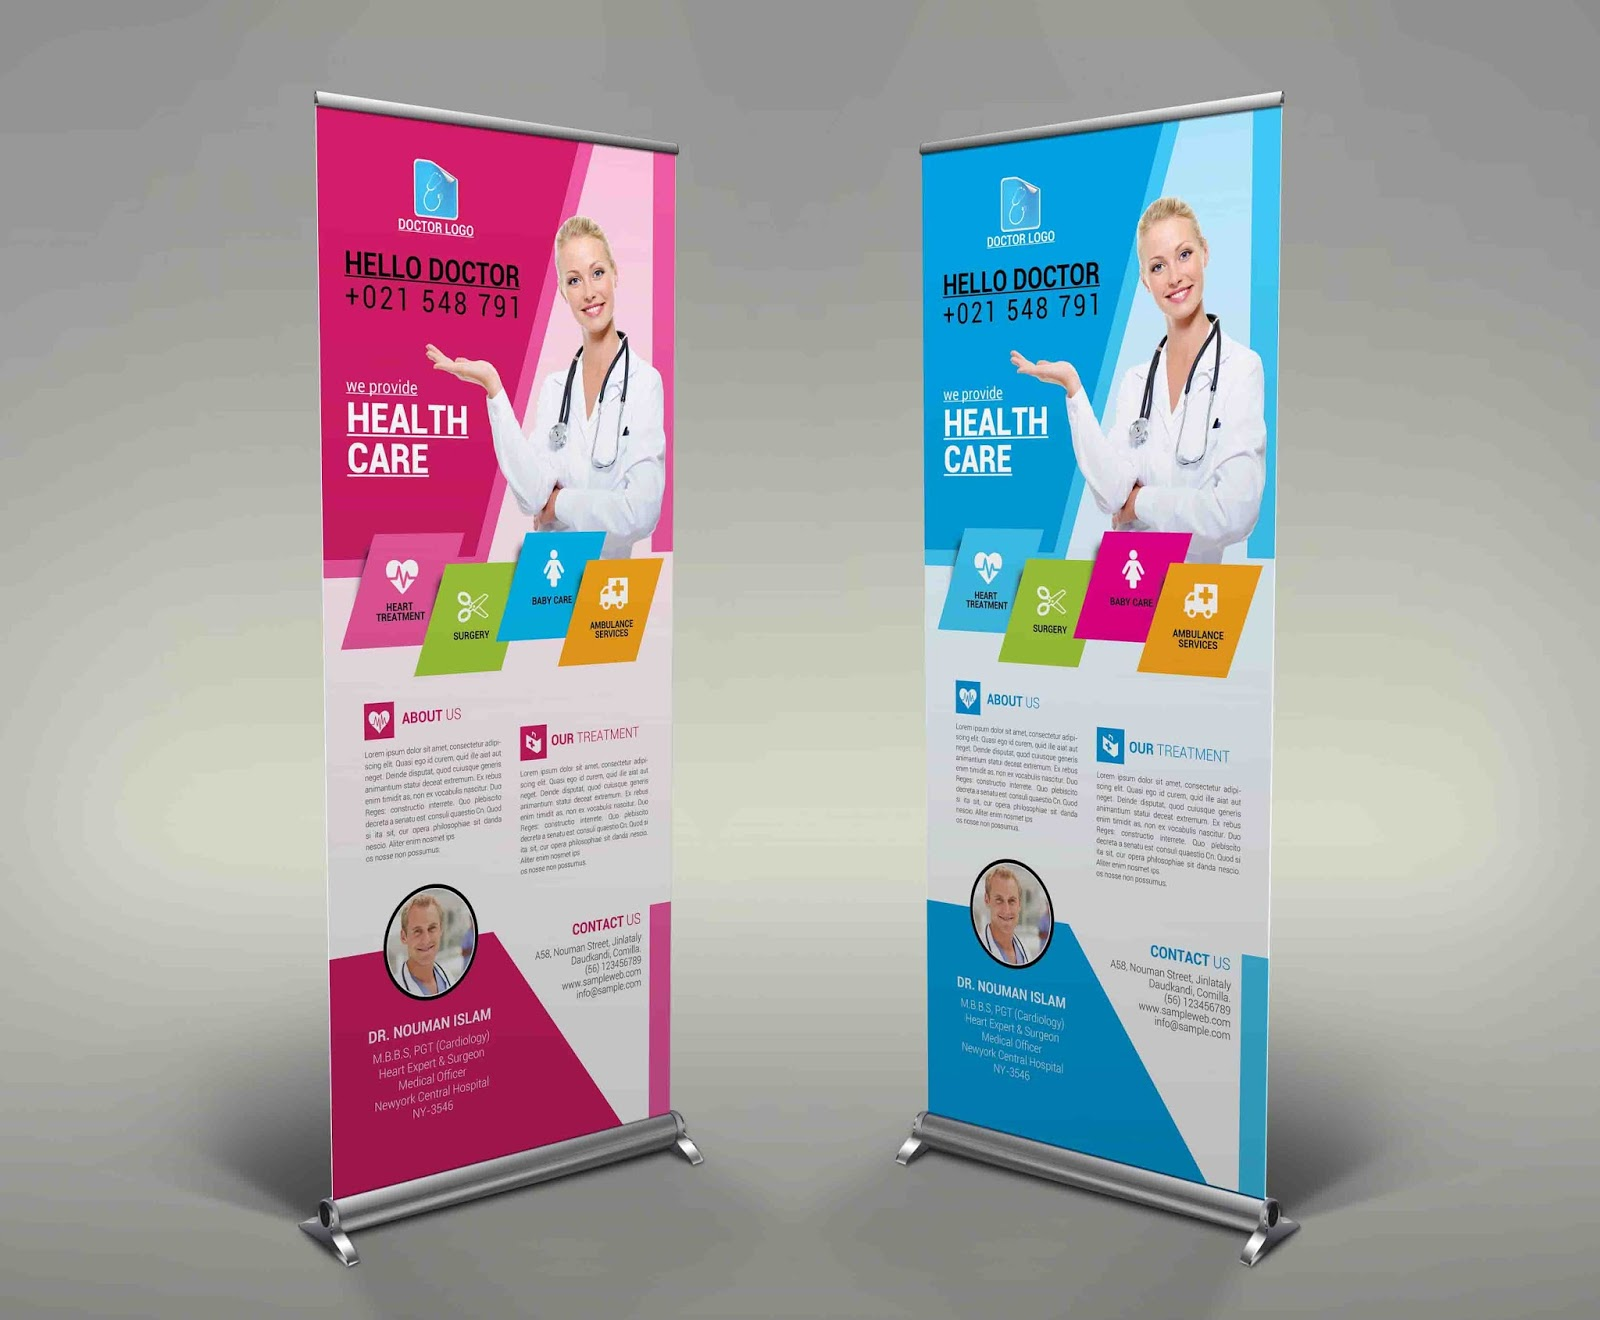 health care medical rollup banner